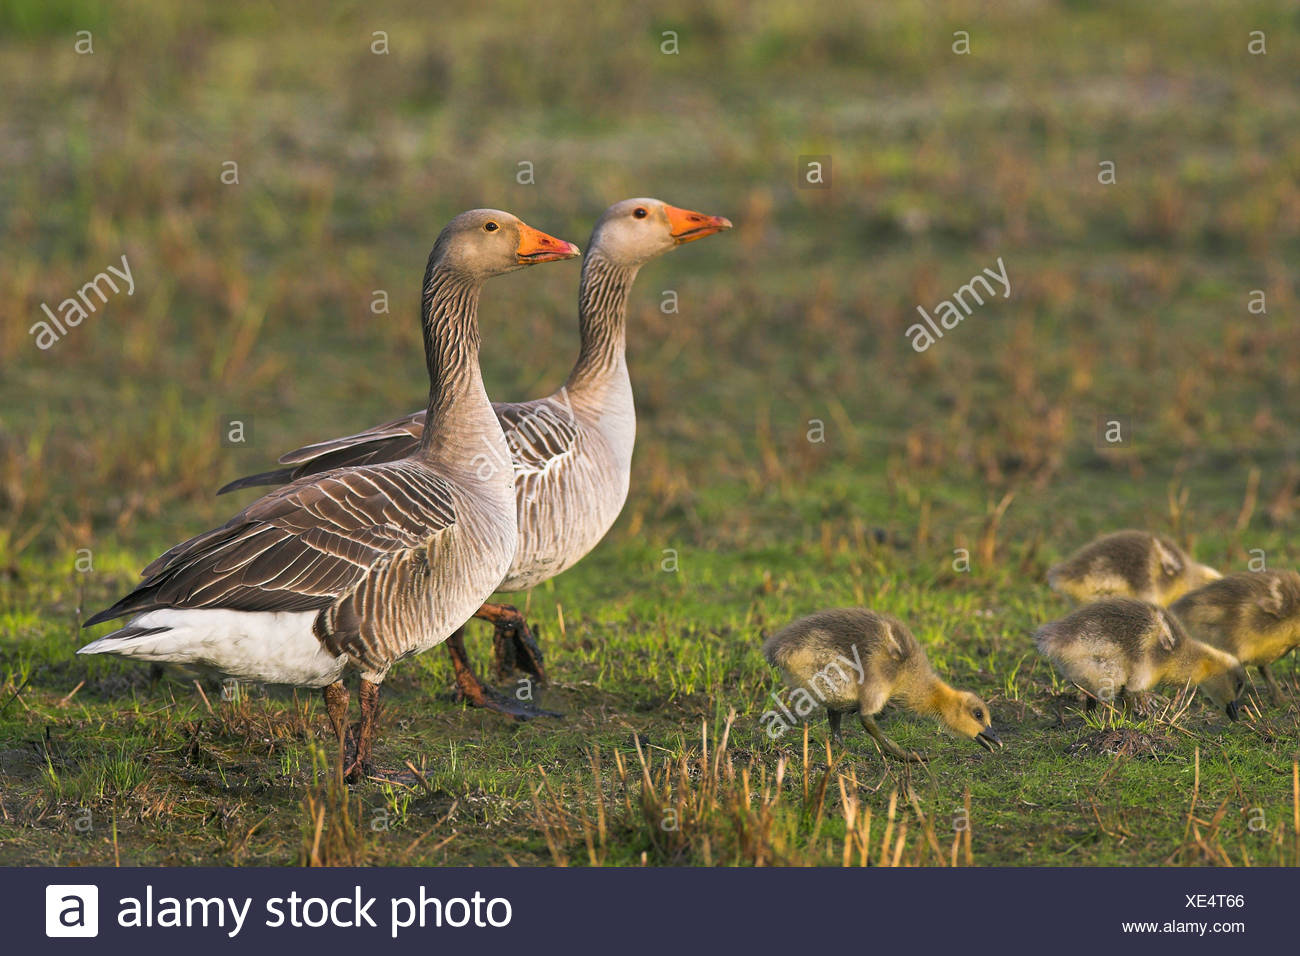 greylag goose (Anser anser), couple with chicks, Netherlands, Texel Stock Photo